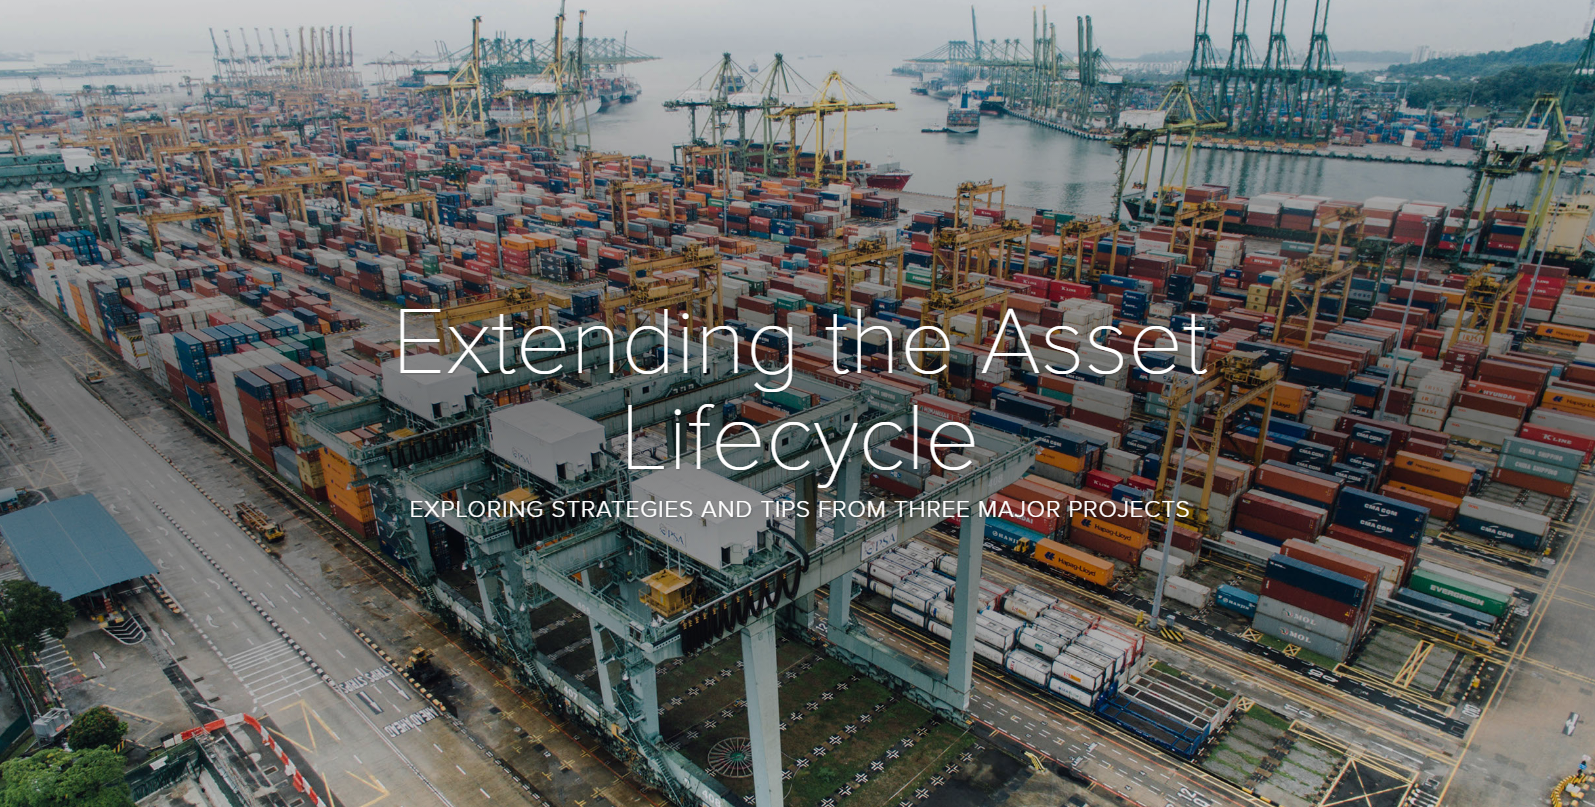 Extending the Asset Lifecycle: Exploring Strategies and Tips from Three Major Projects